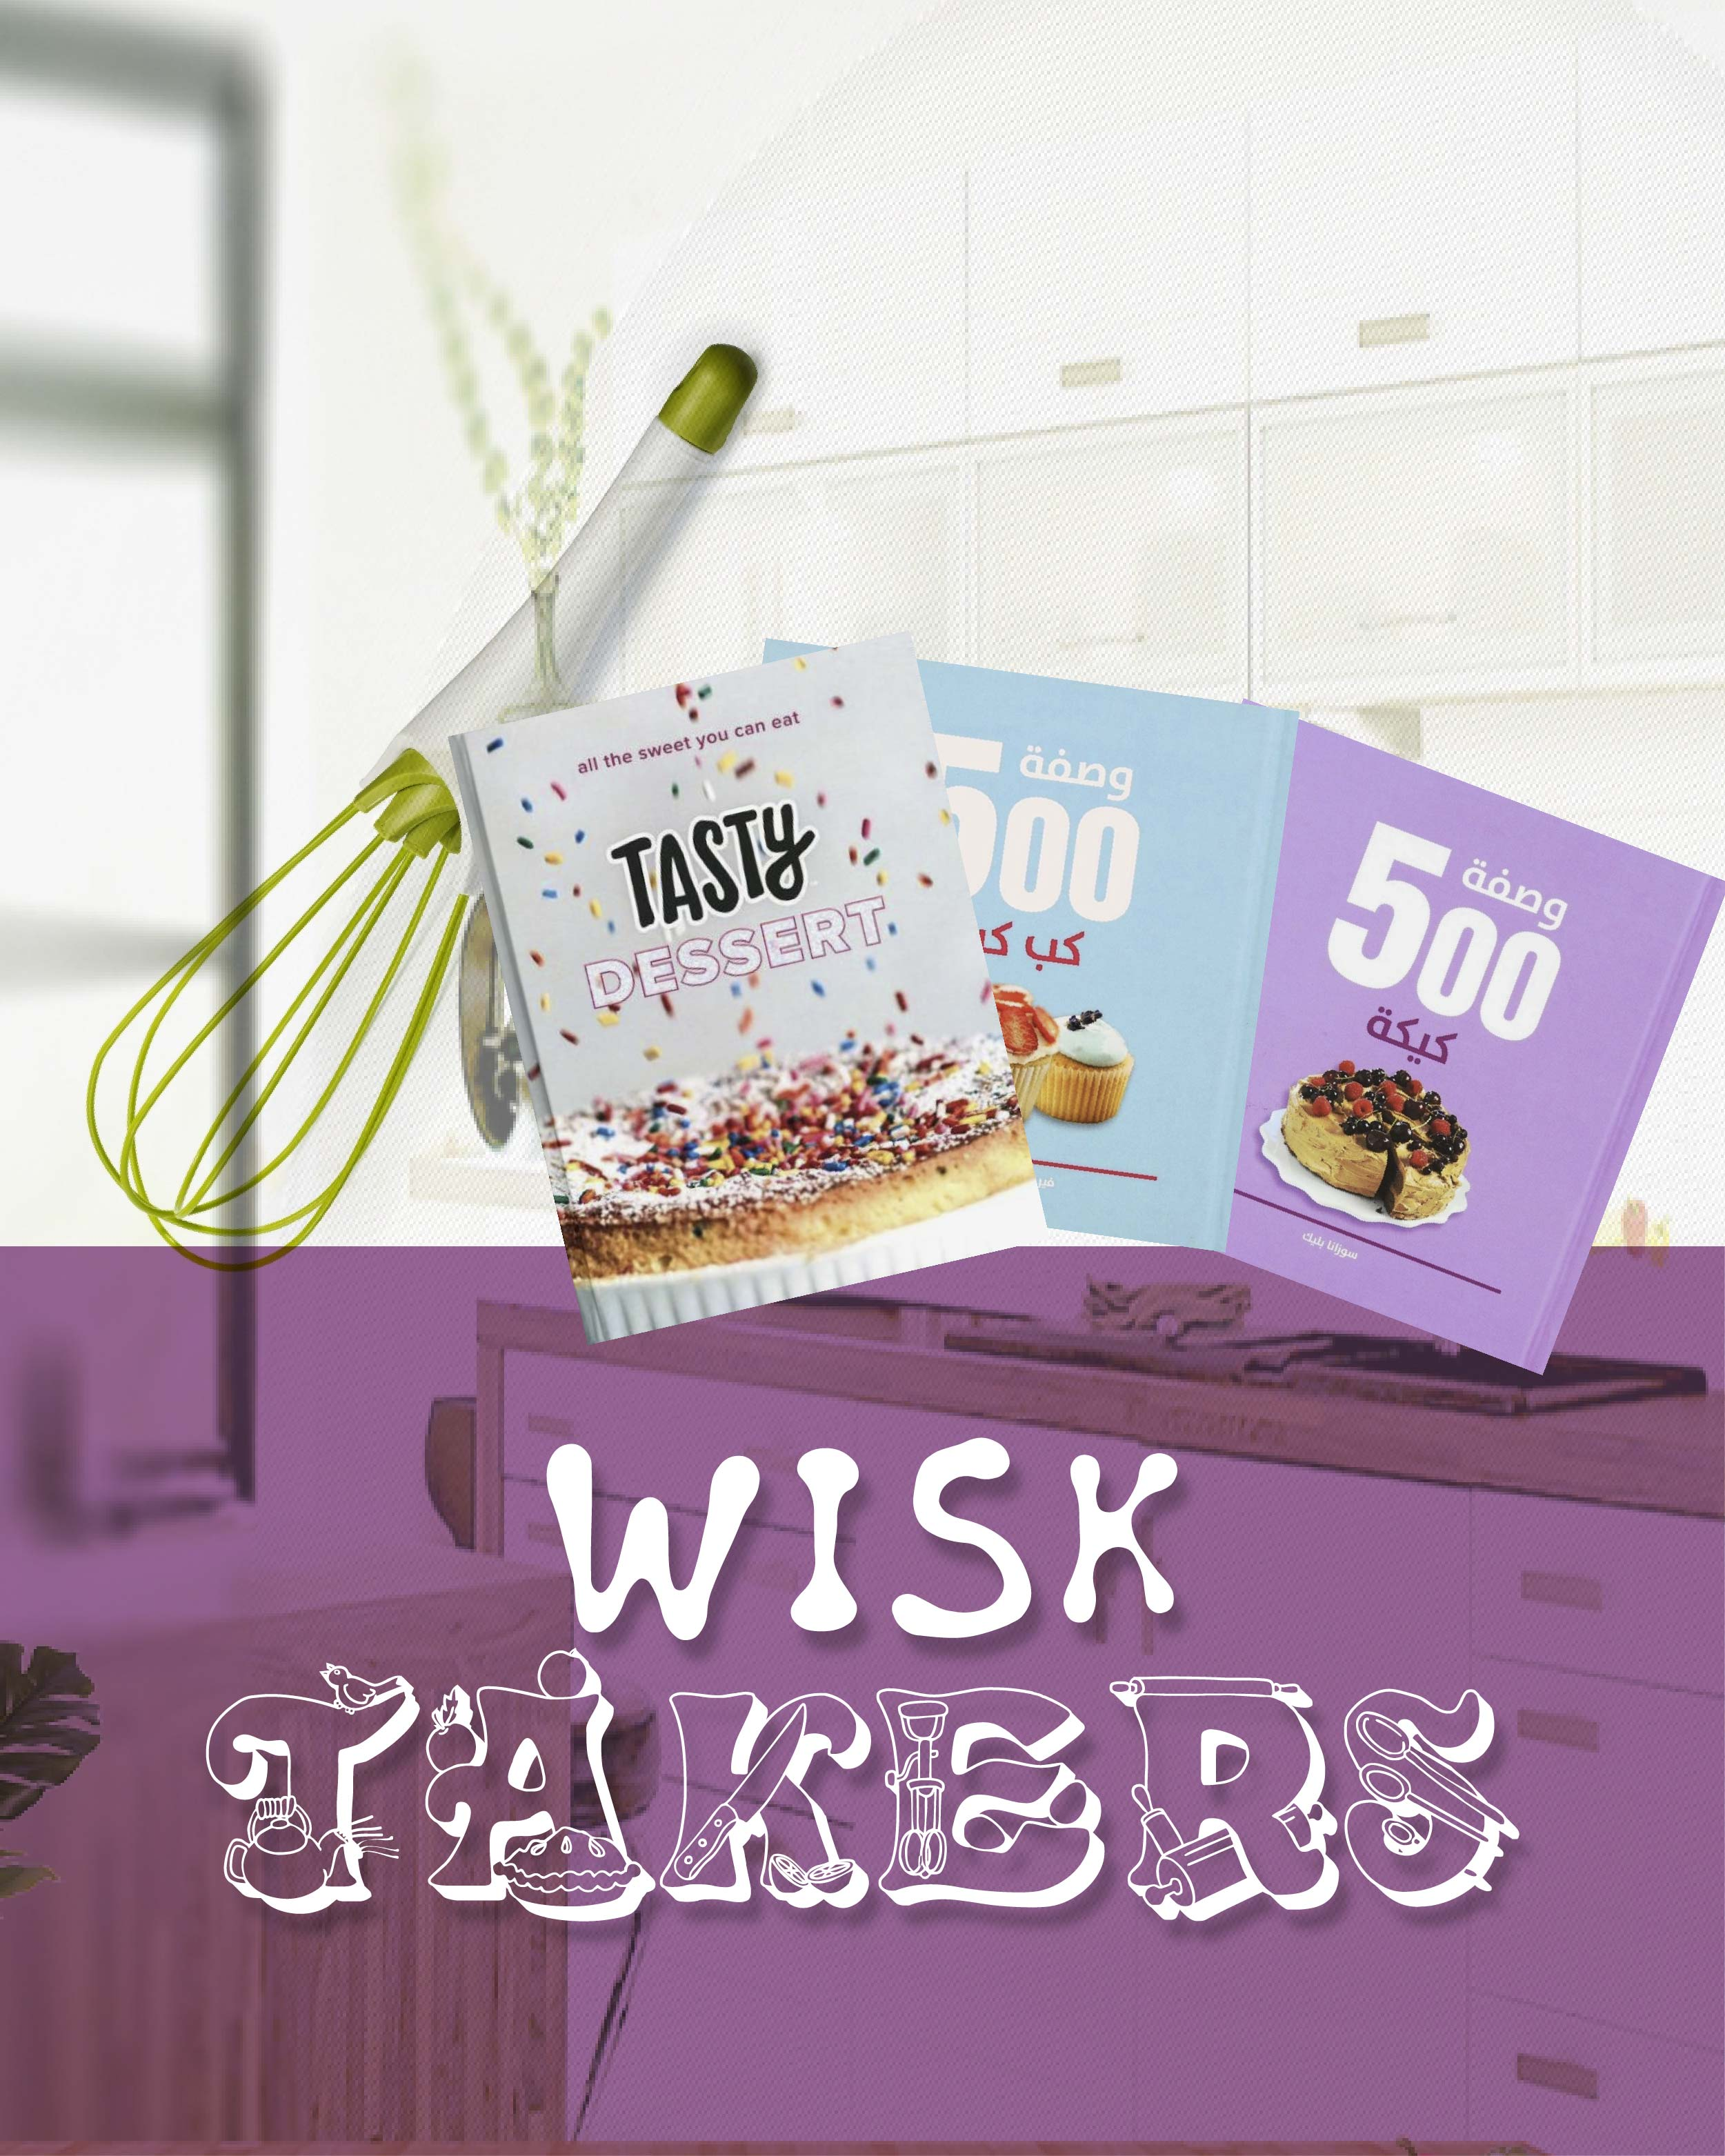 Wisk Takers